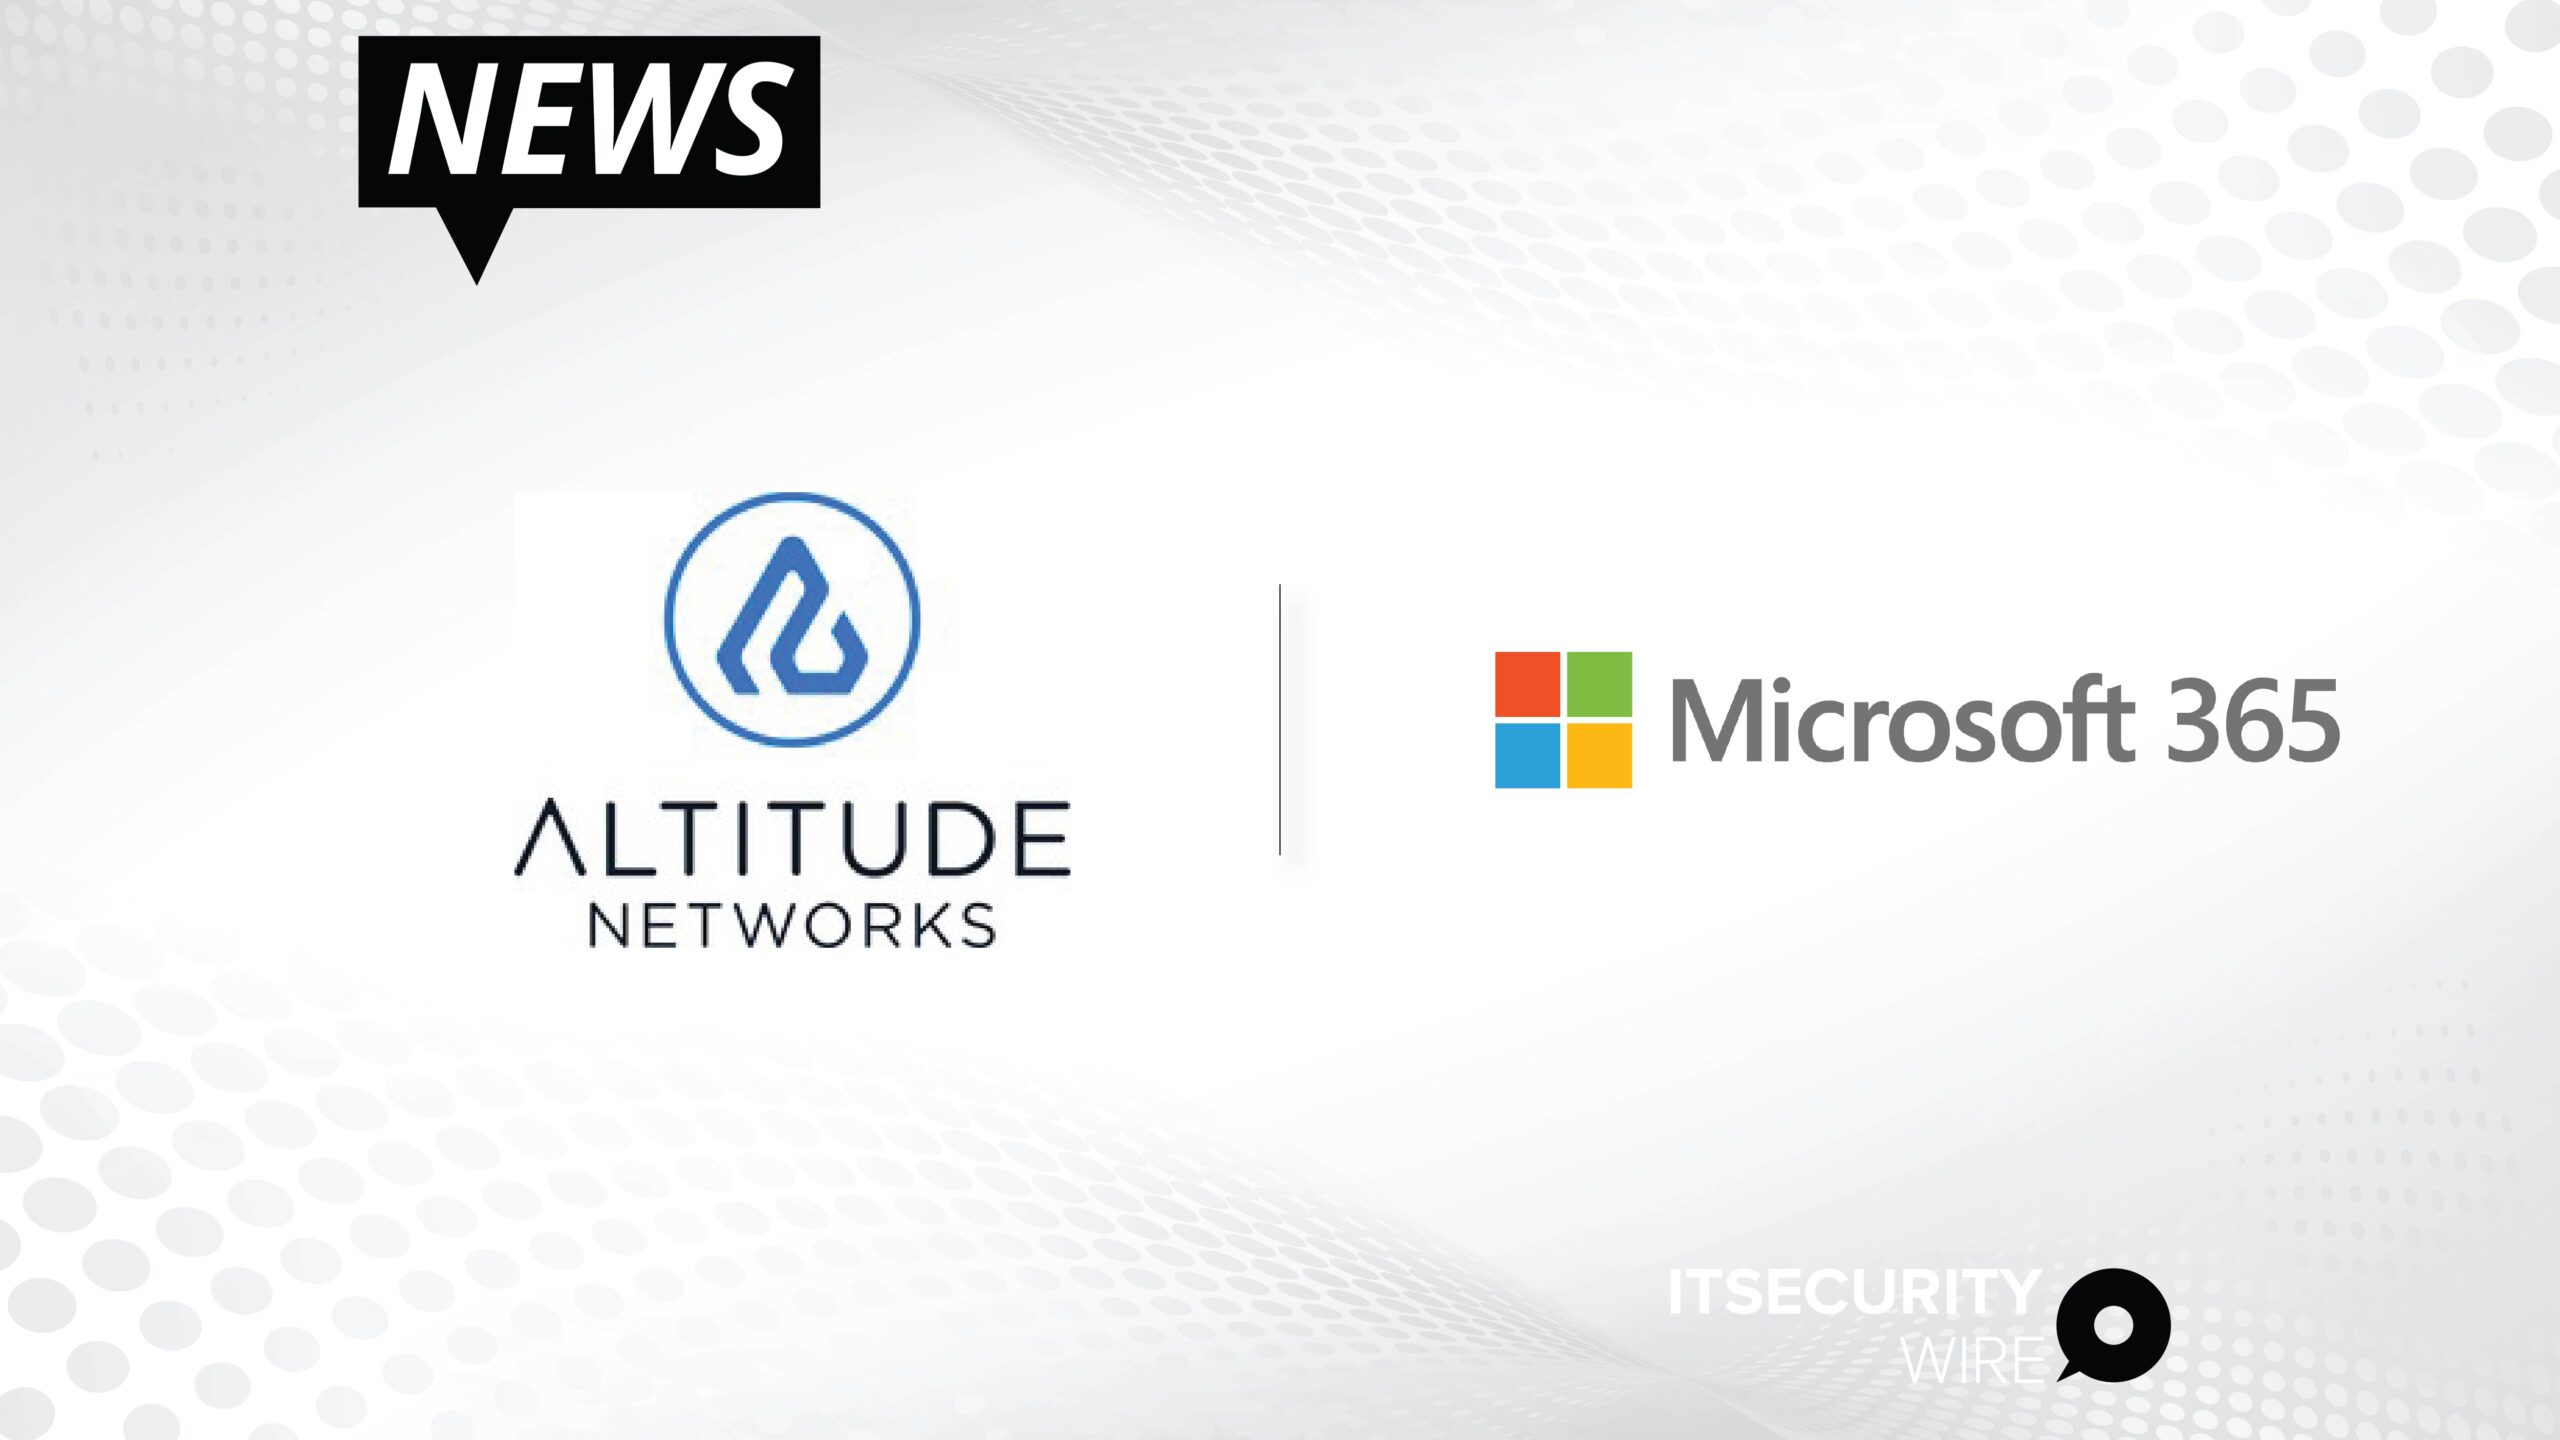 Altitude Networks Announces Microsoft 365 integration for SharePoint and OneDrive providing Cloud Data Protection and Rapid Risks Remediation-01